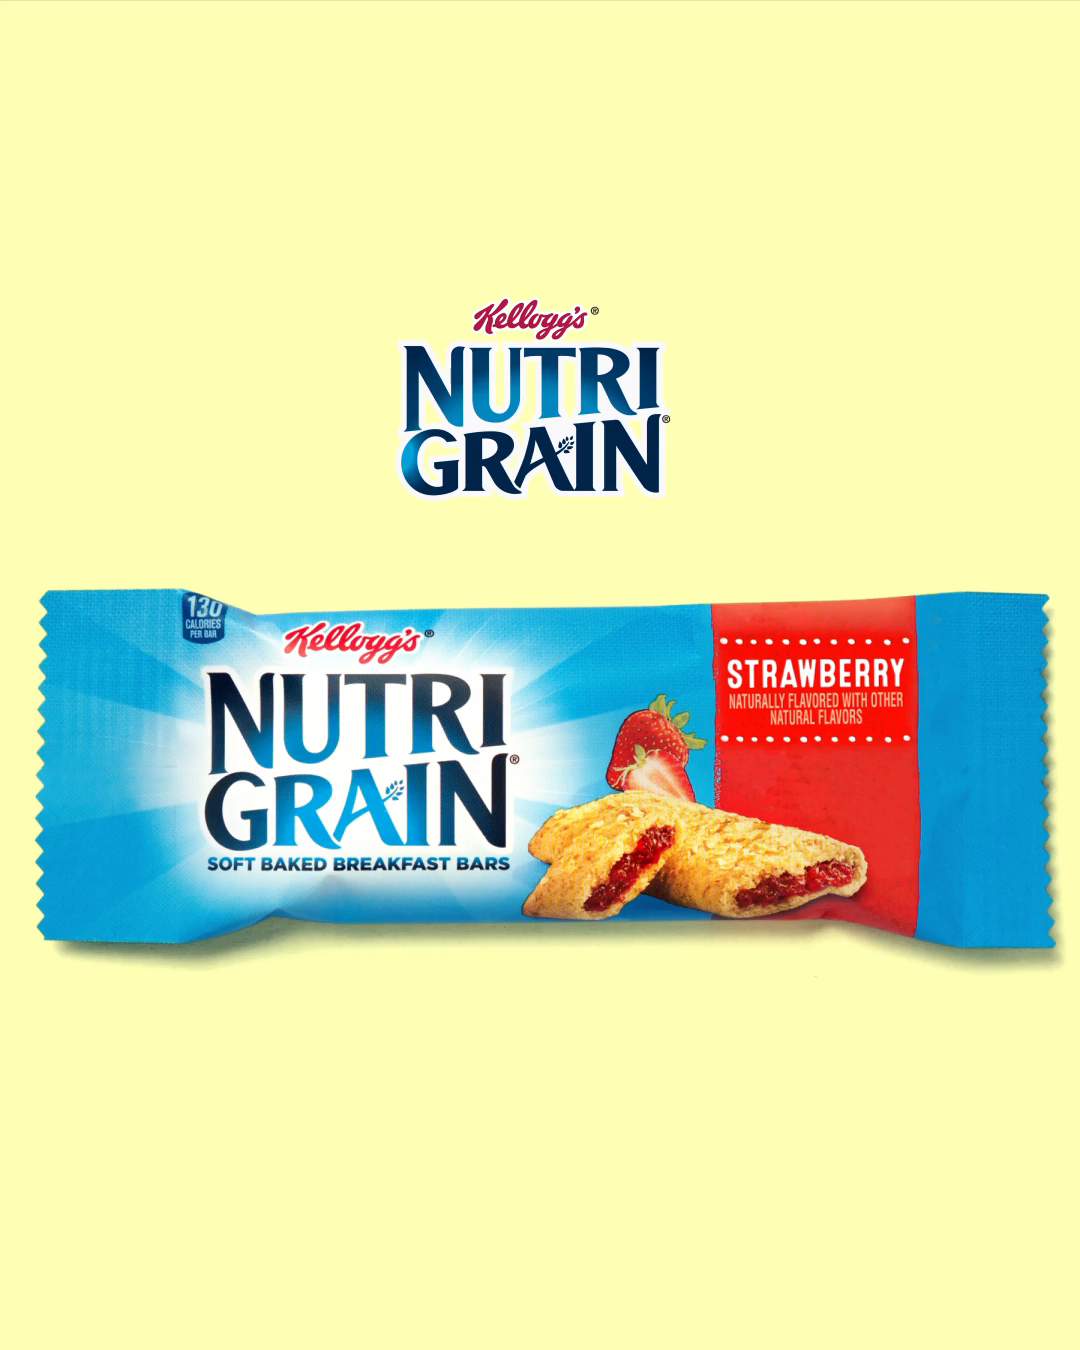 Now with no artificial flavors, this delicious soft baked whole-grain bar gives kids the snack they need to stay outdoors longer with the taste that kids love and parents trust.